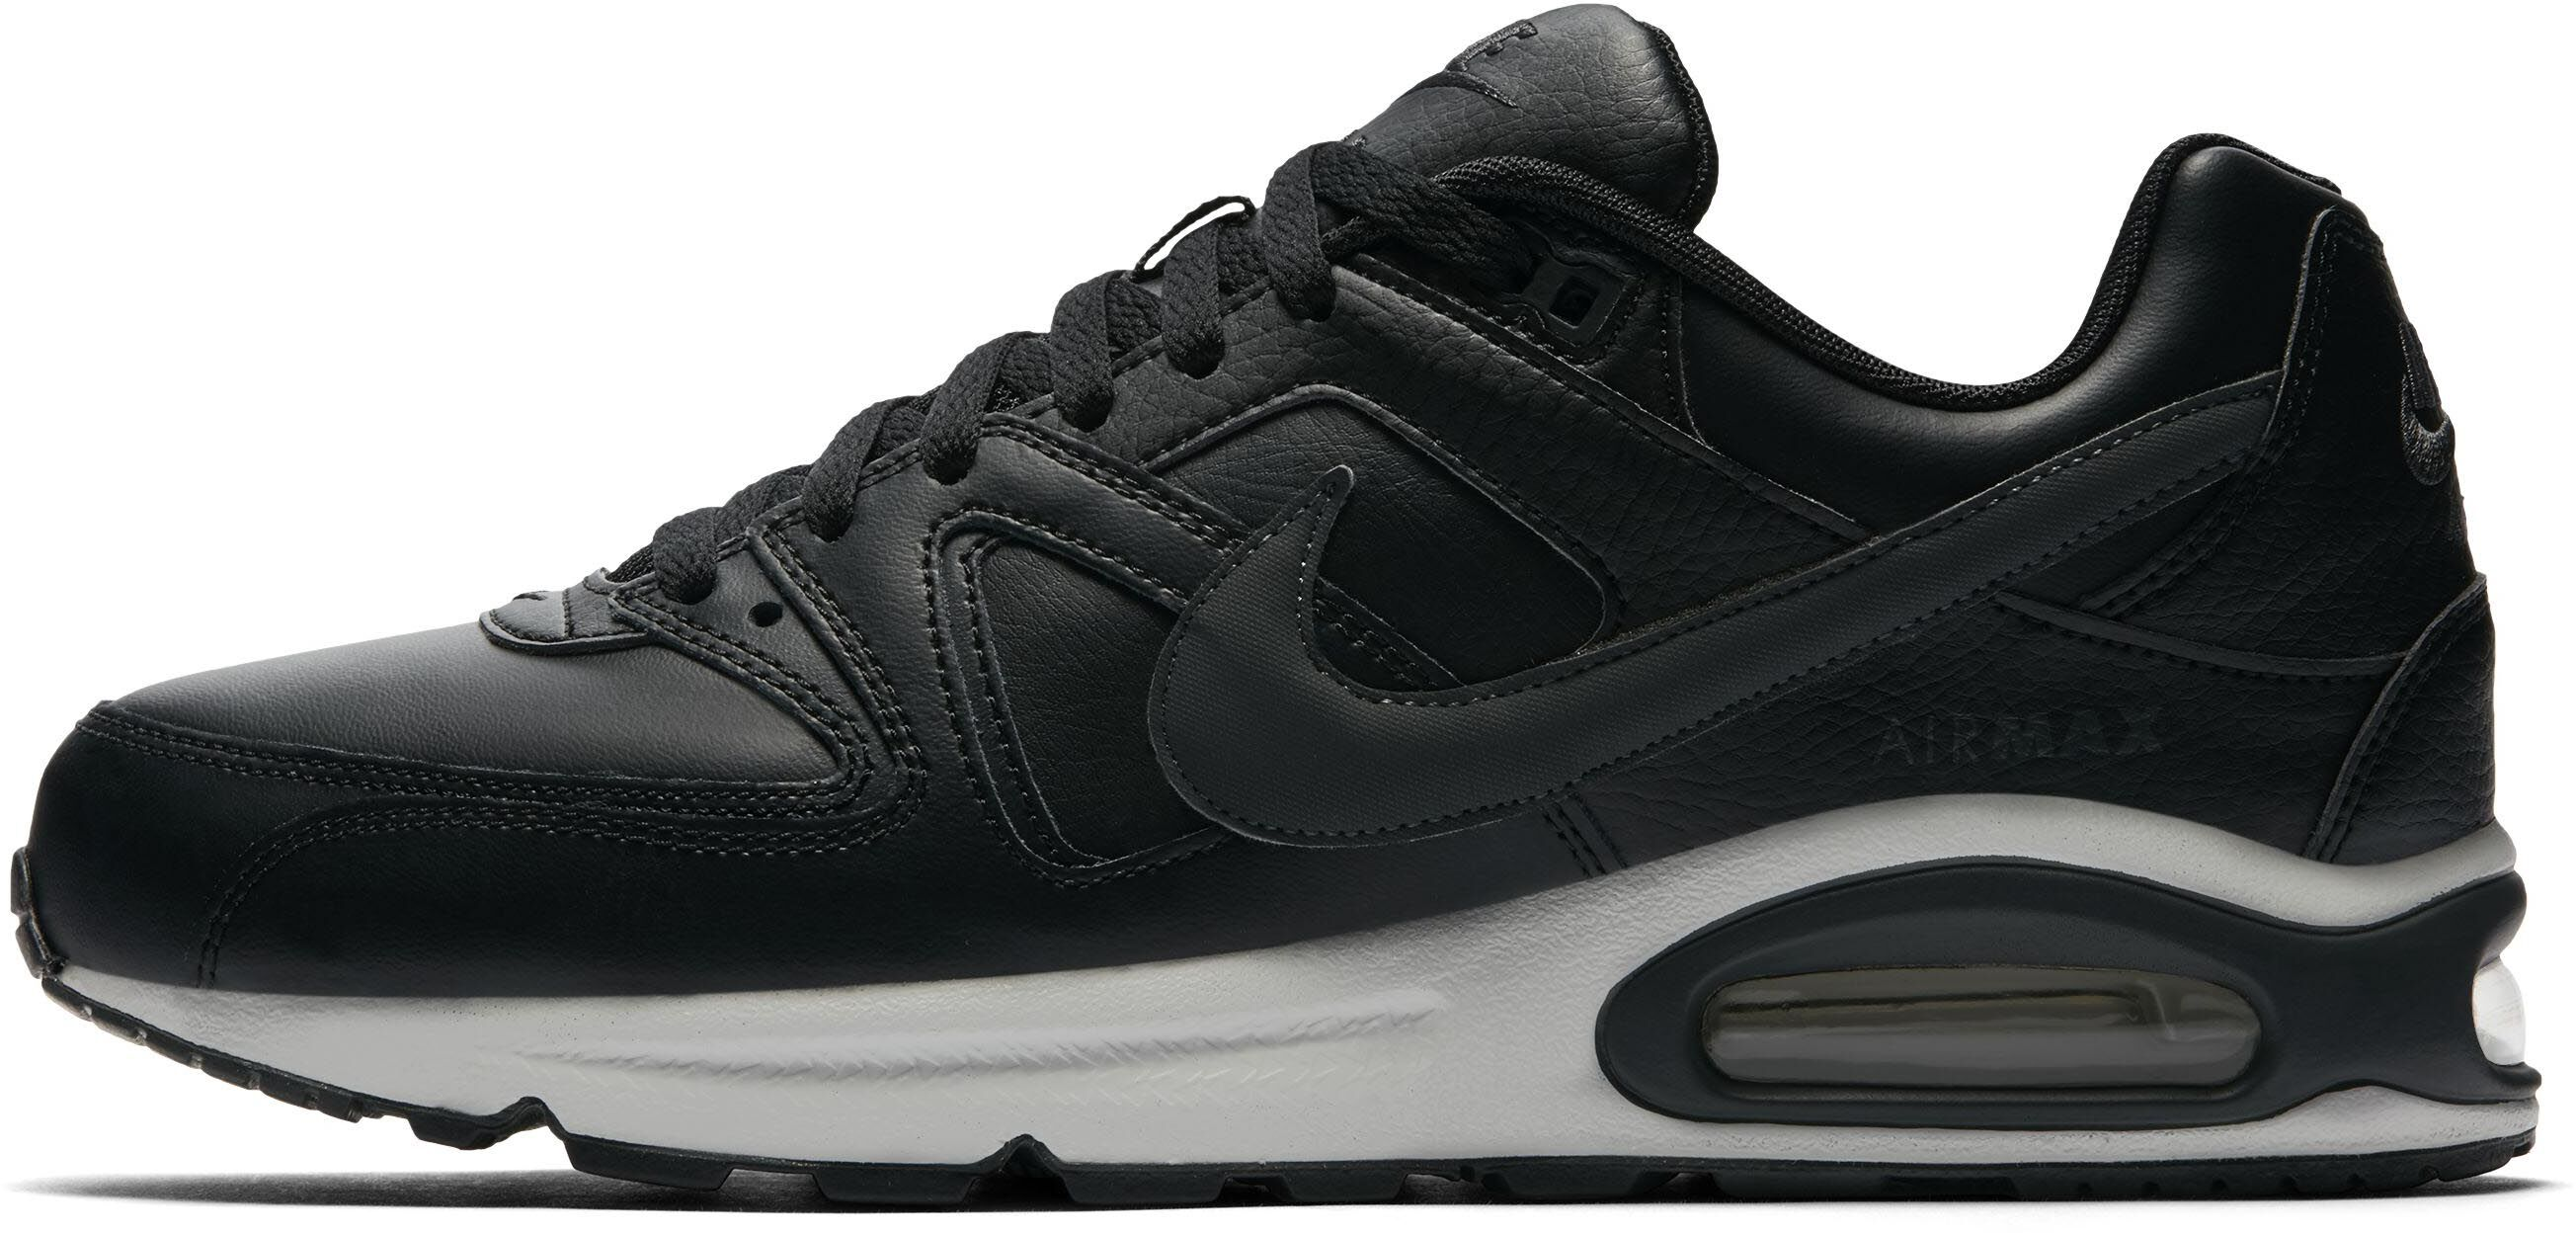 NIKE AIR MAX COMMAND LEATHER 749760 401 – maat 39